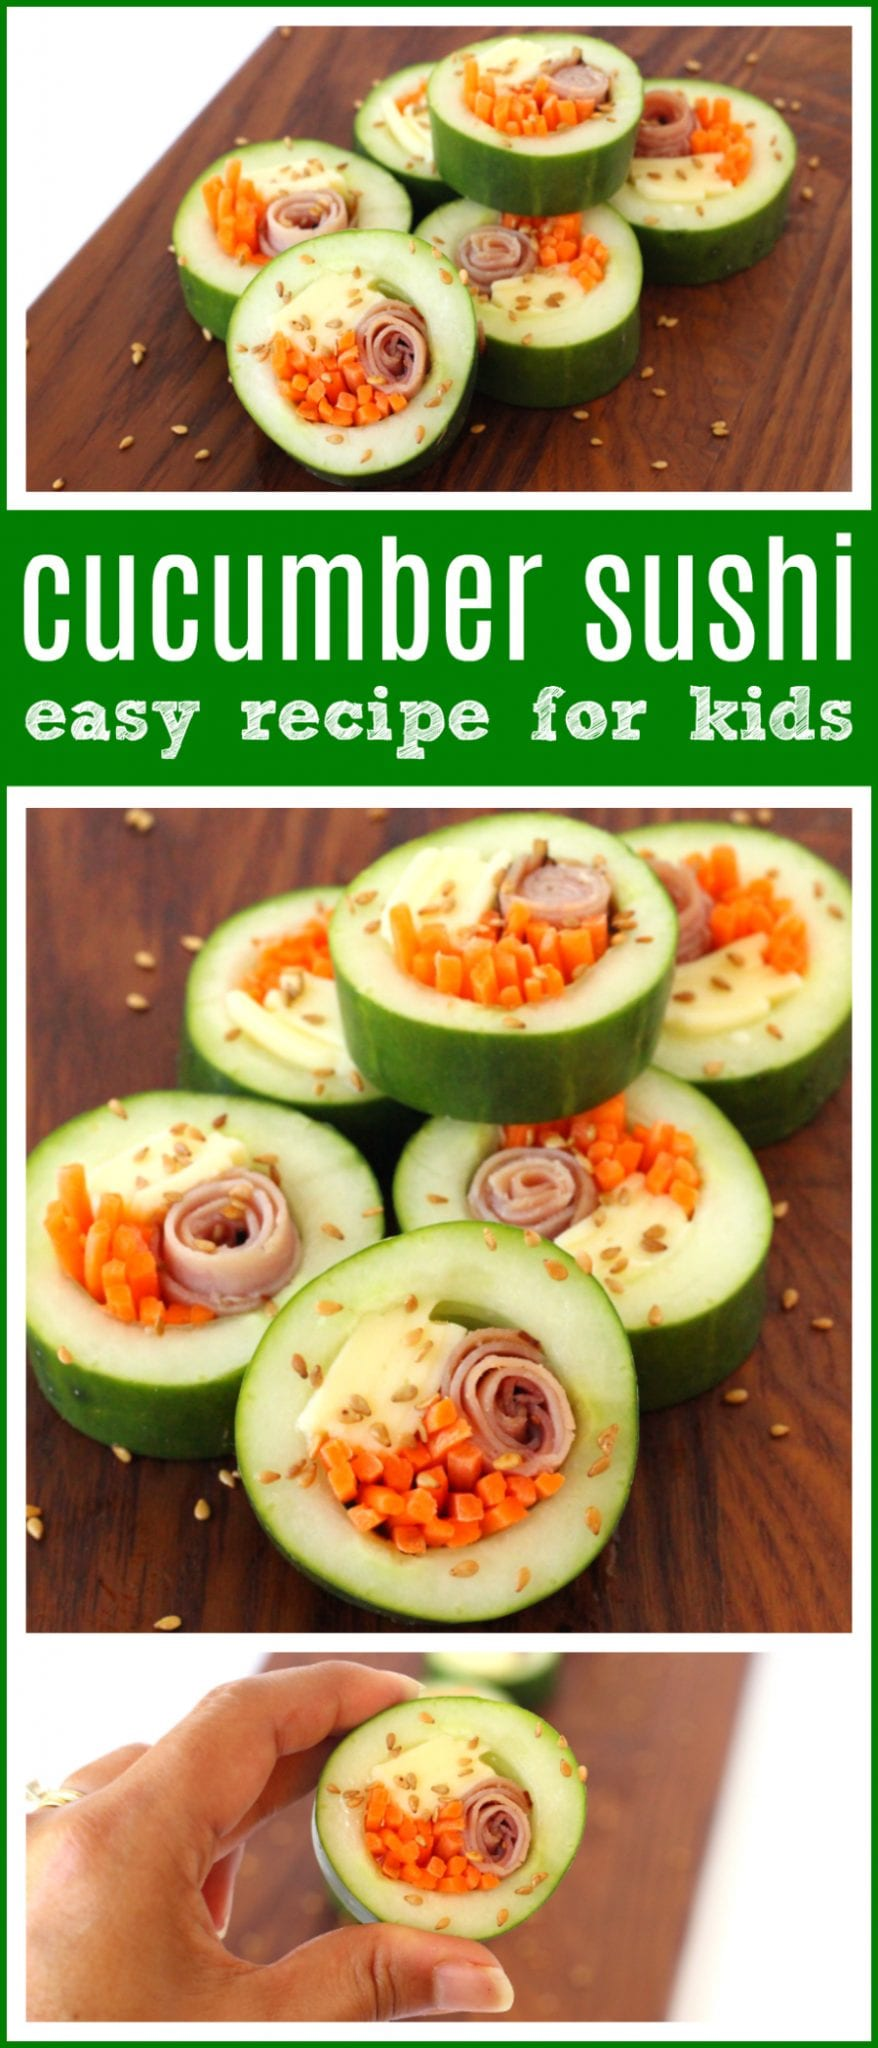 Kid Friendly Cucumber Sushi for Back-to-School | Quick & fun kids lunchbox idea - perfect for school lunches! Healthy & easy gluten & sandwich free recipe - This school lunch recipe would be perfect for a gluten free meal plan or as an appetizer for a party. #GlutenFree #GlutenFreeRecipe #LunchBox #LunchBoxRecipe #MealPlan #appetizer